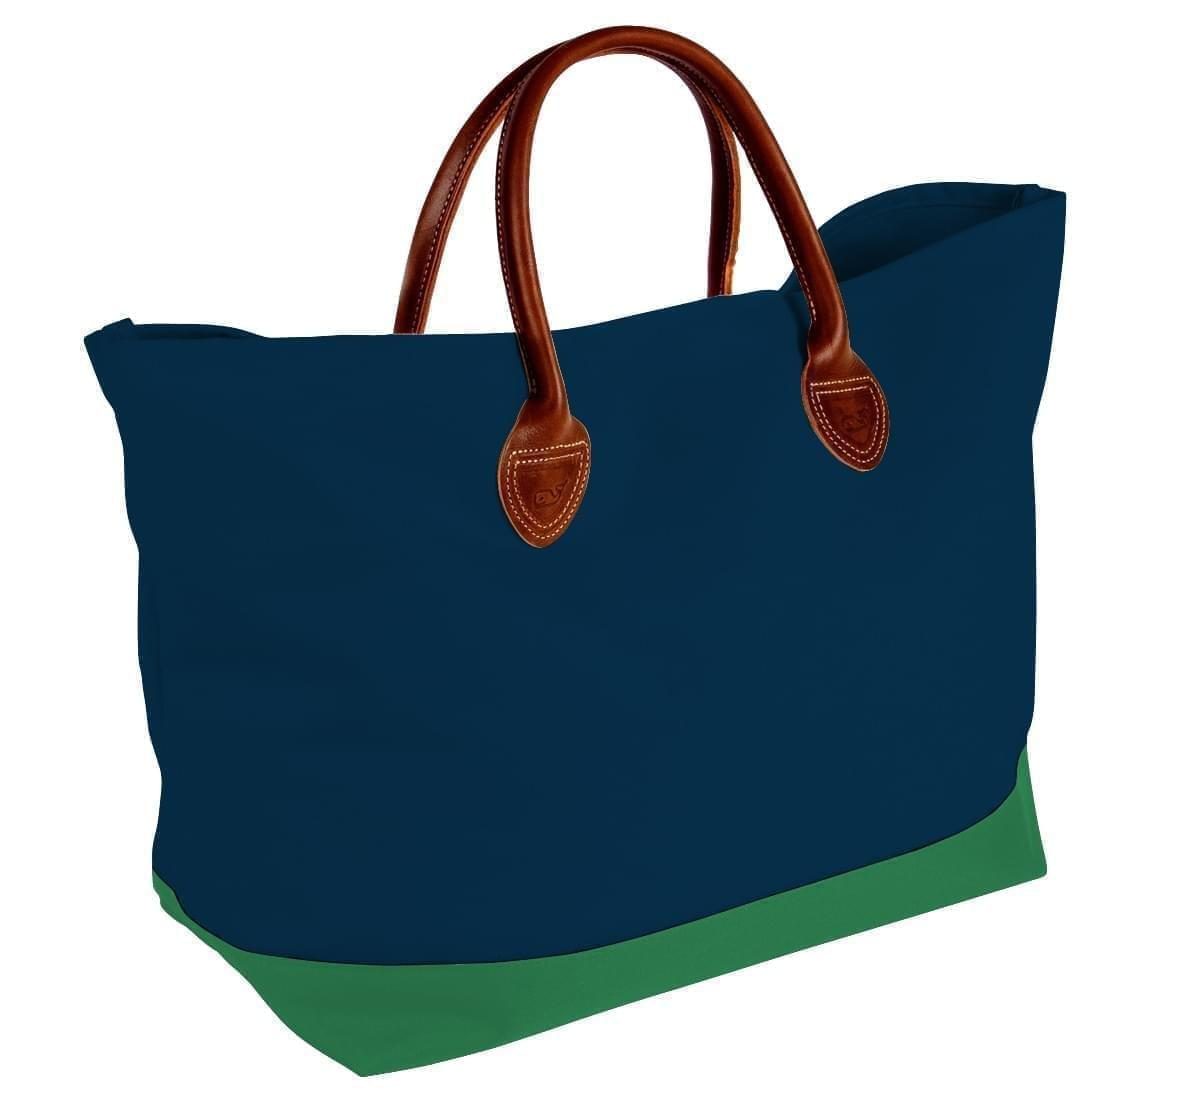 USA Made Canvas Leather Handle Totes, Navy-Kelly Green, 10899-HC9